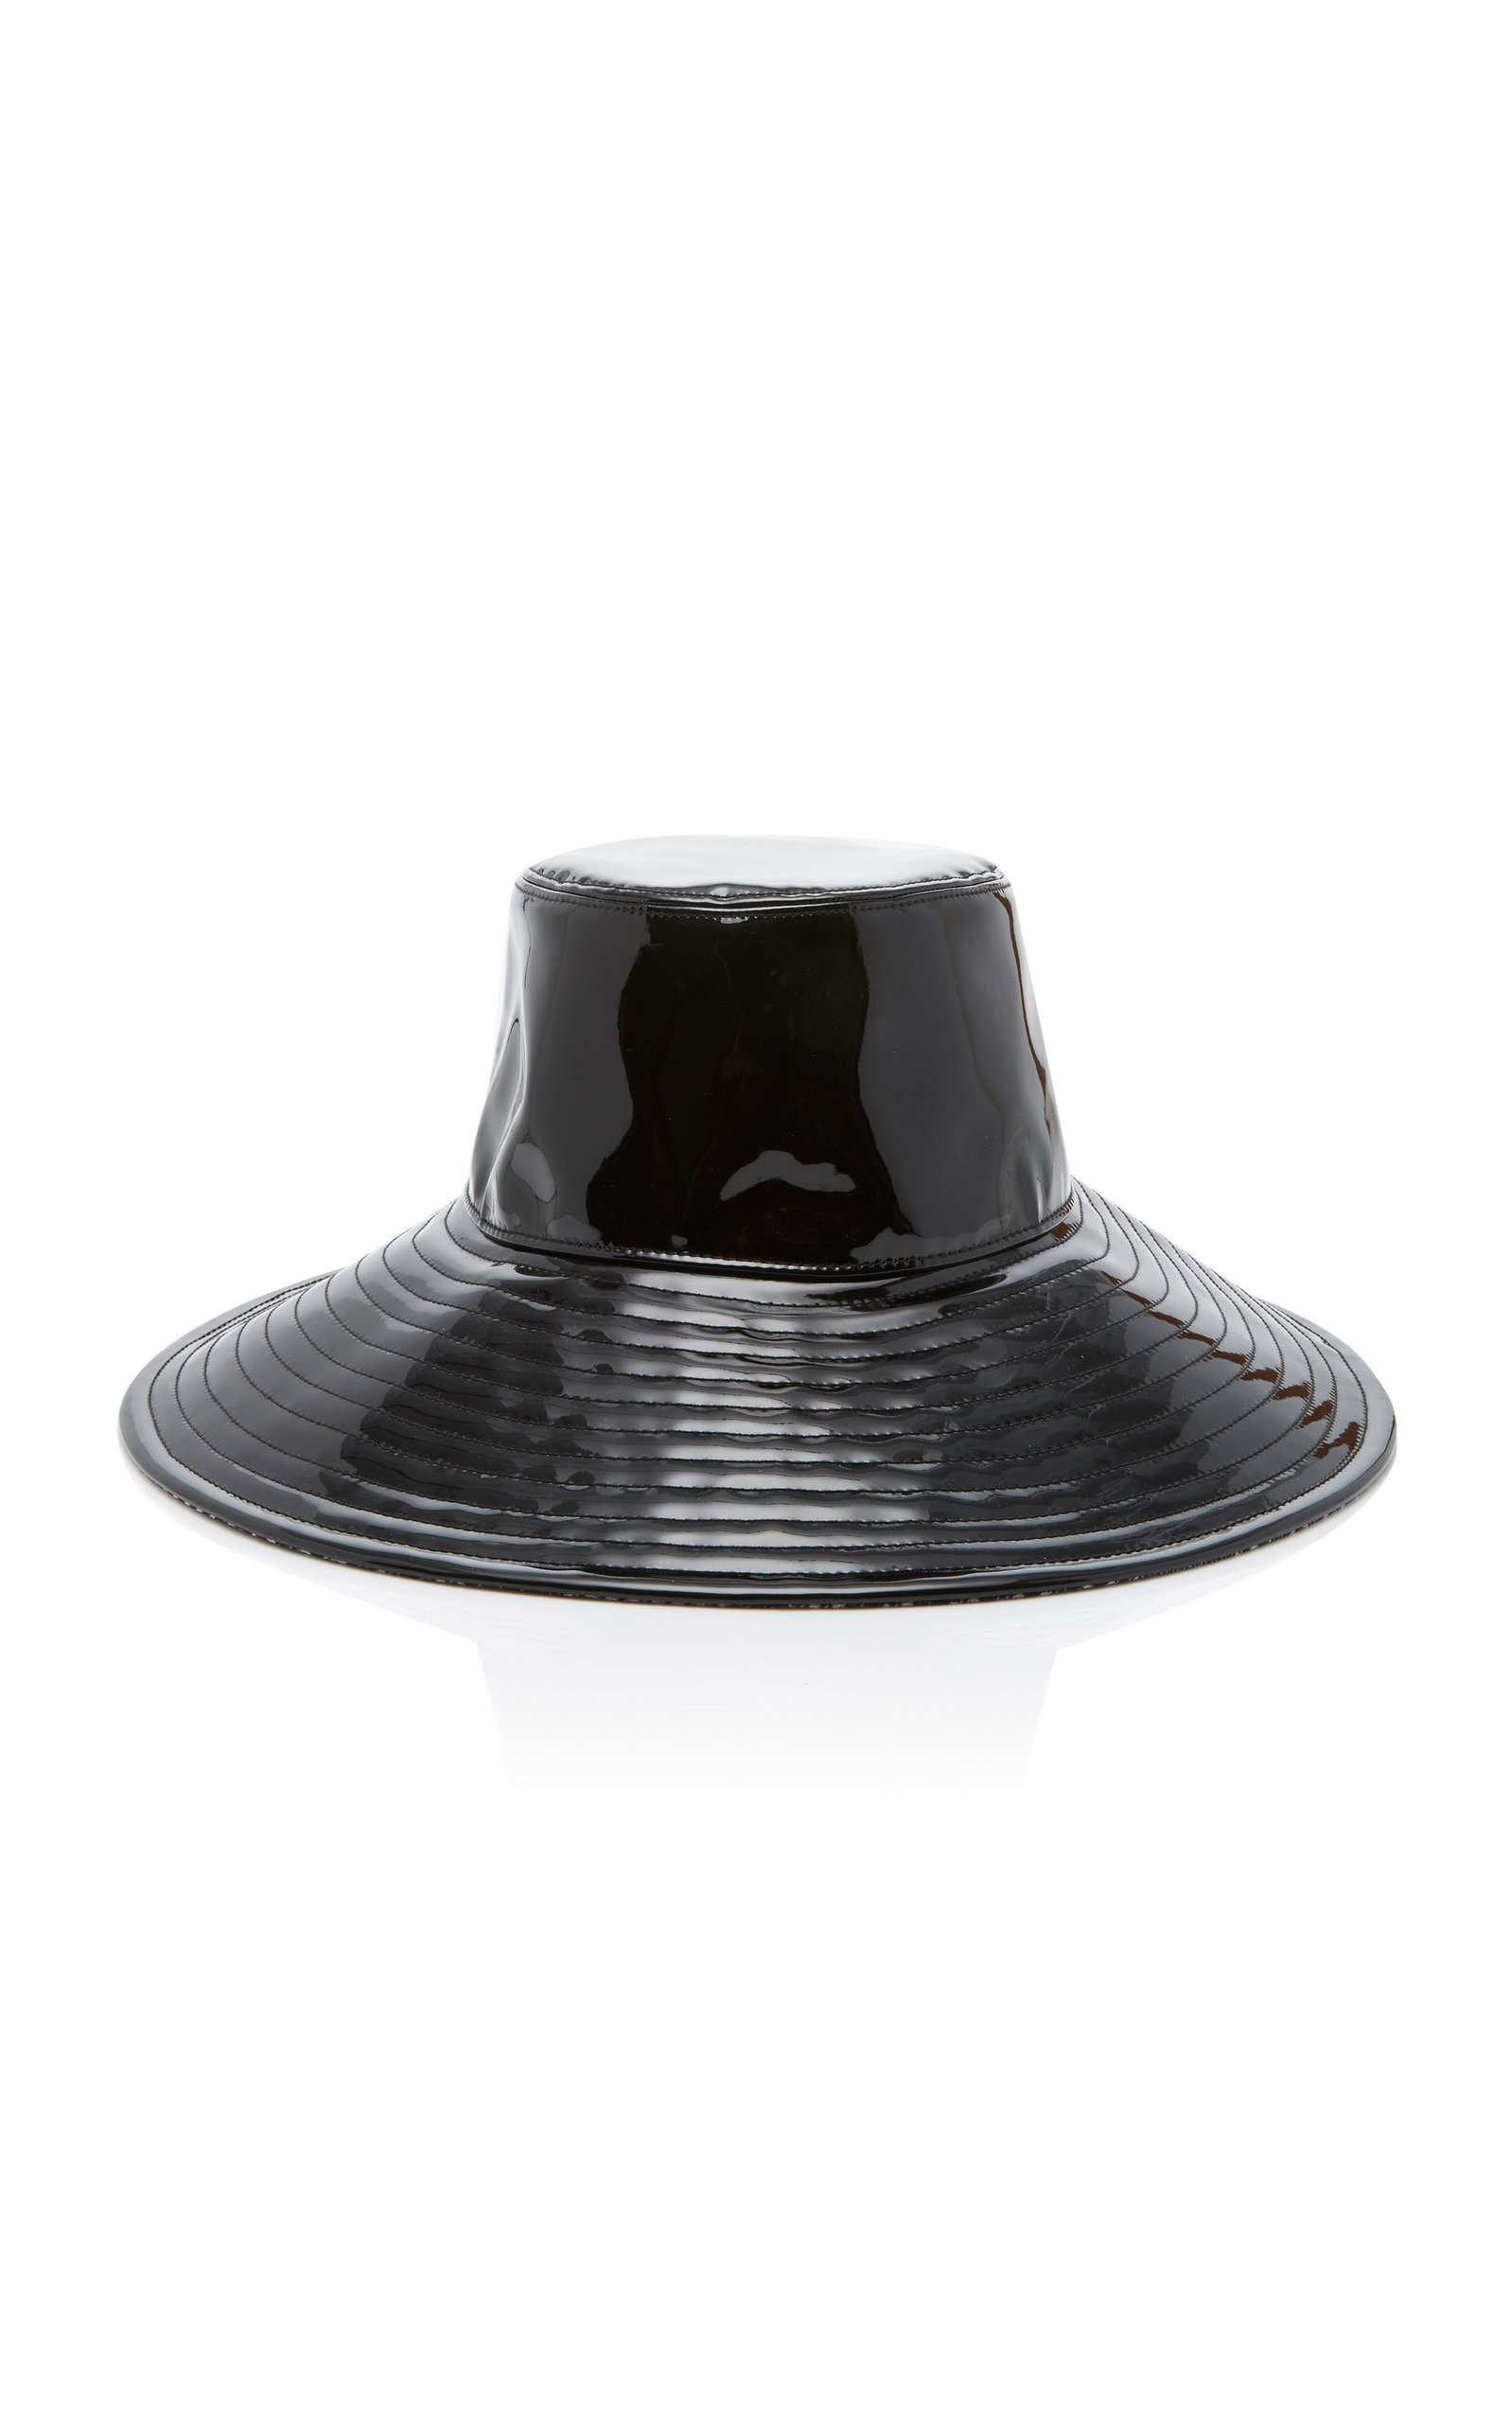 cafdafc26e1a9 Eric JavitsDriptidoo Patent Leather Bucket Hat. CLOSE. Loading